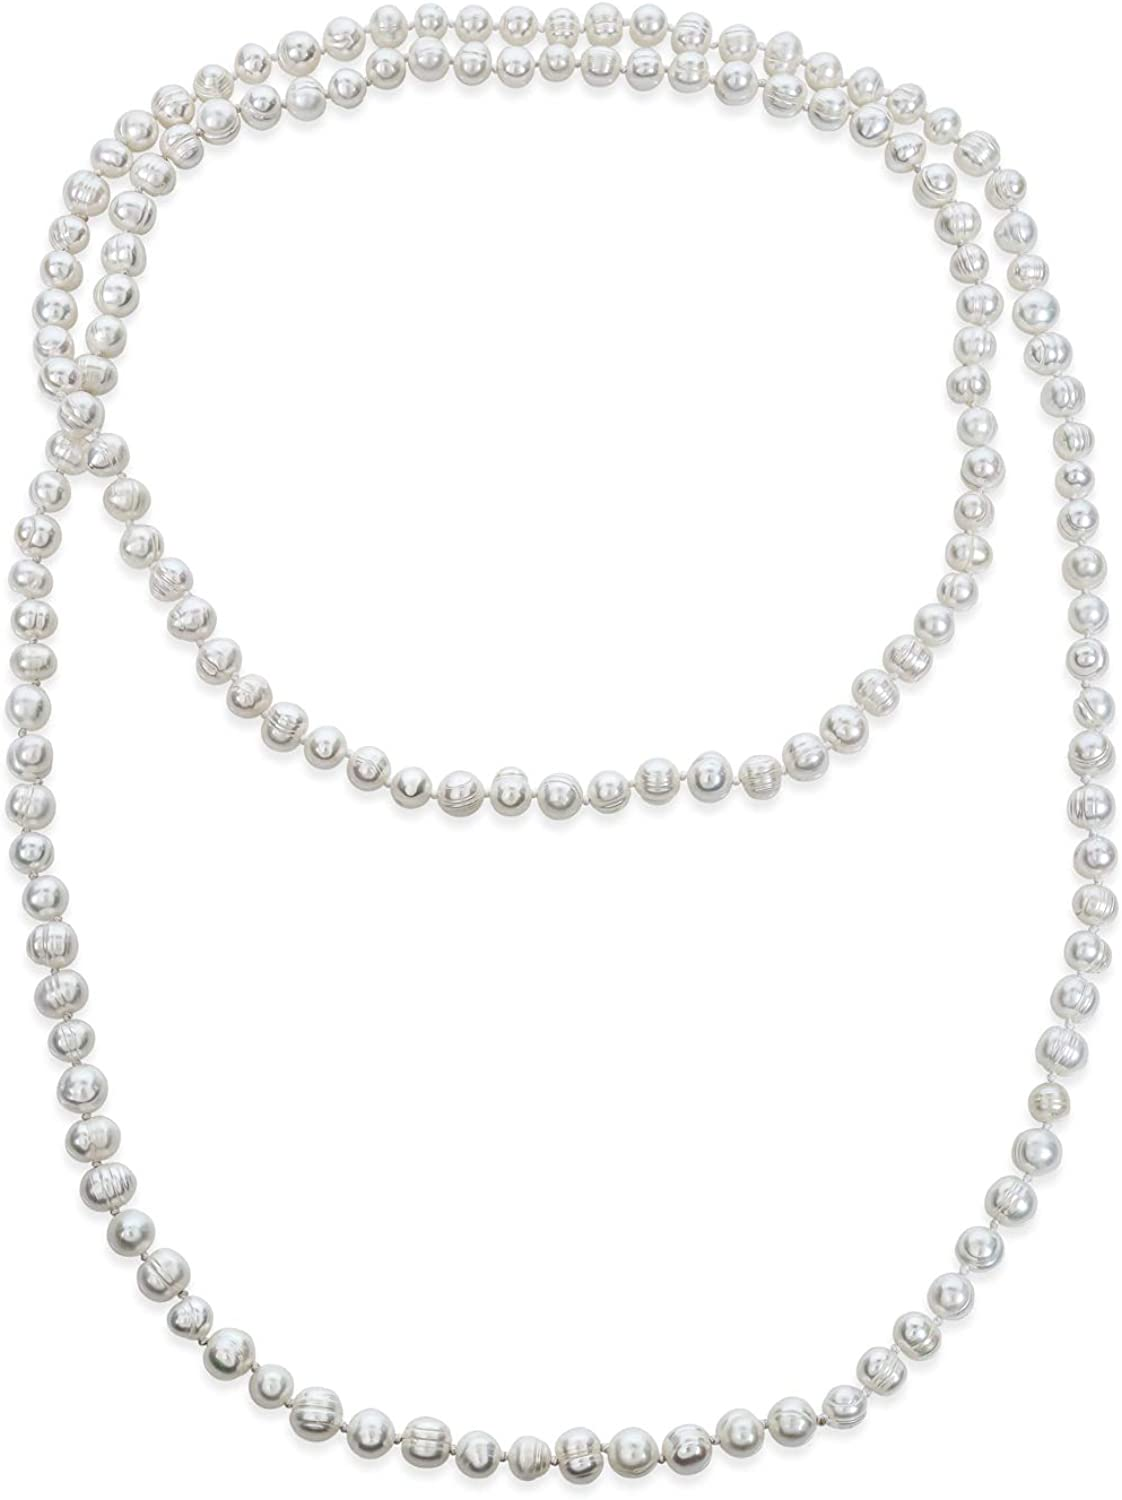 Bridal Wedding Pearls Fashion Jewelry Set Necklace Earrings White Shell Pearls 10mm Silver Clasp Women\u2019s Jewelry Gift